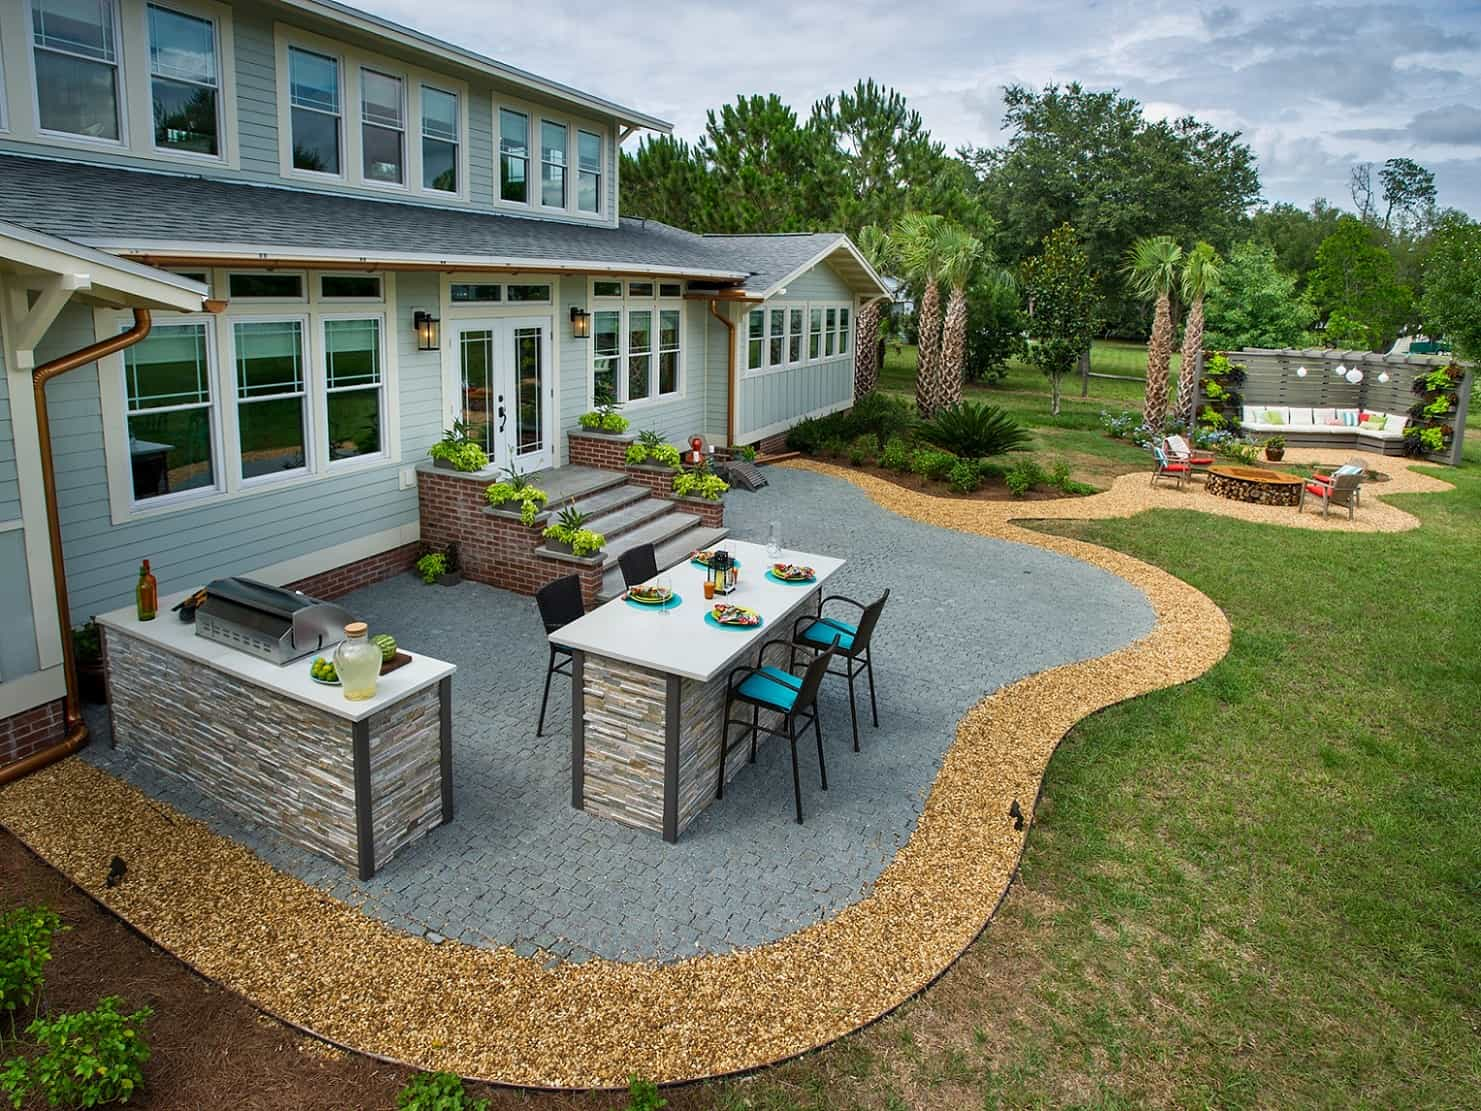 Fabulous Patios Designs That Will Leave You Speechless ... on Backyard Patio Cost id=80749